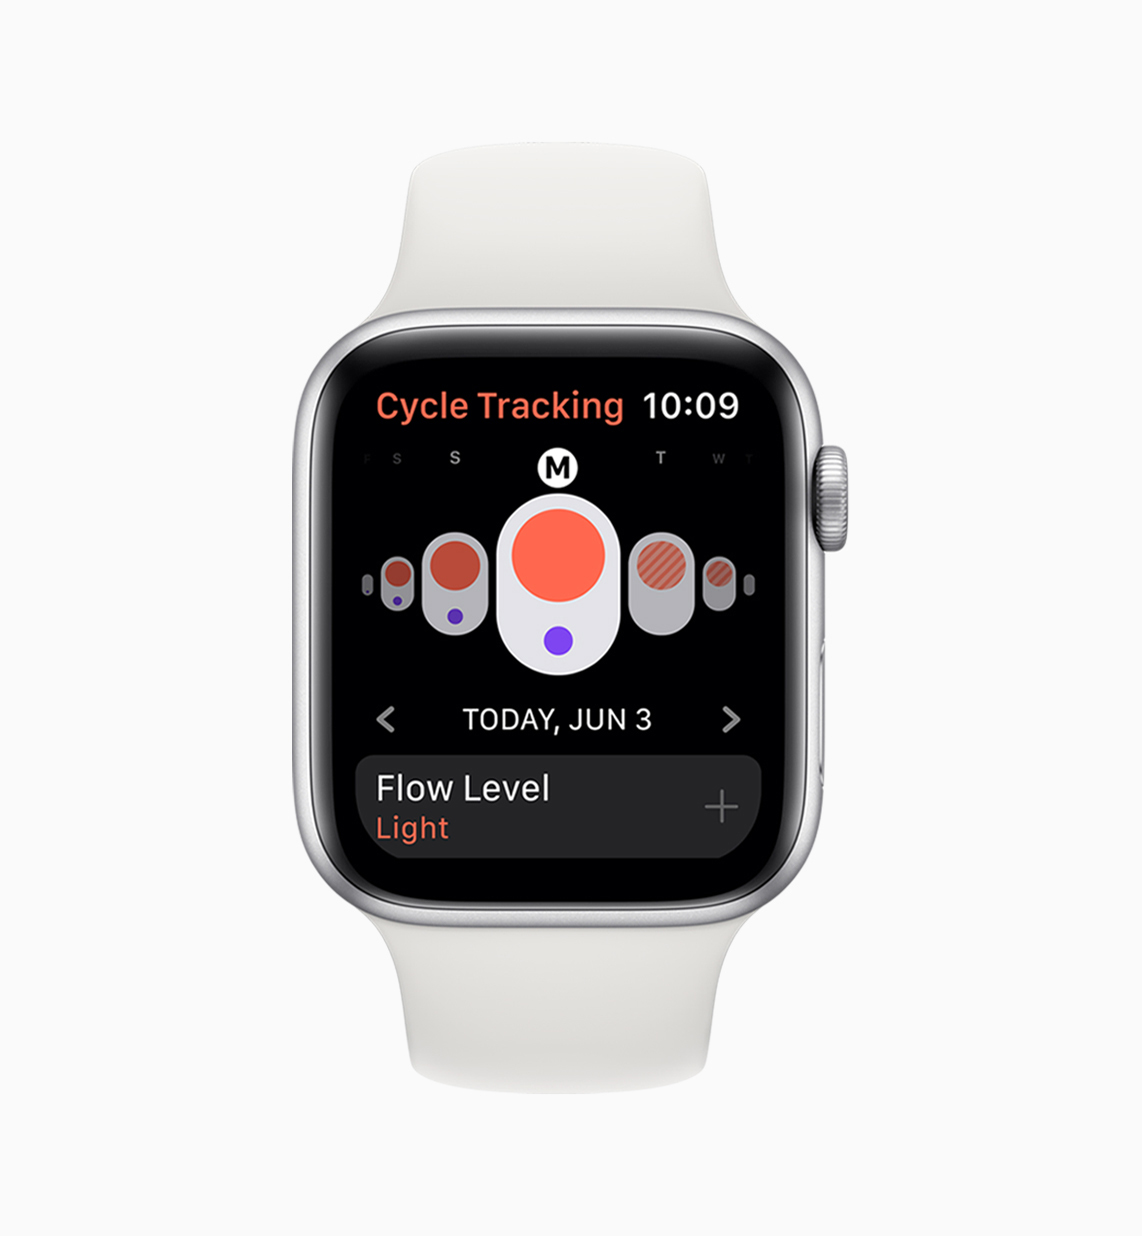 watchOS 6 Adds New Health and Fitness Capabilities, More for Apple Watch